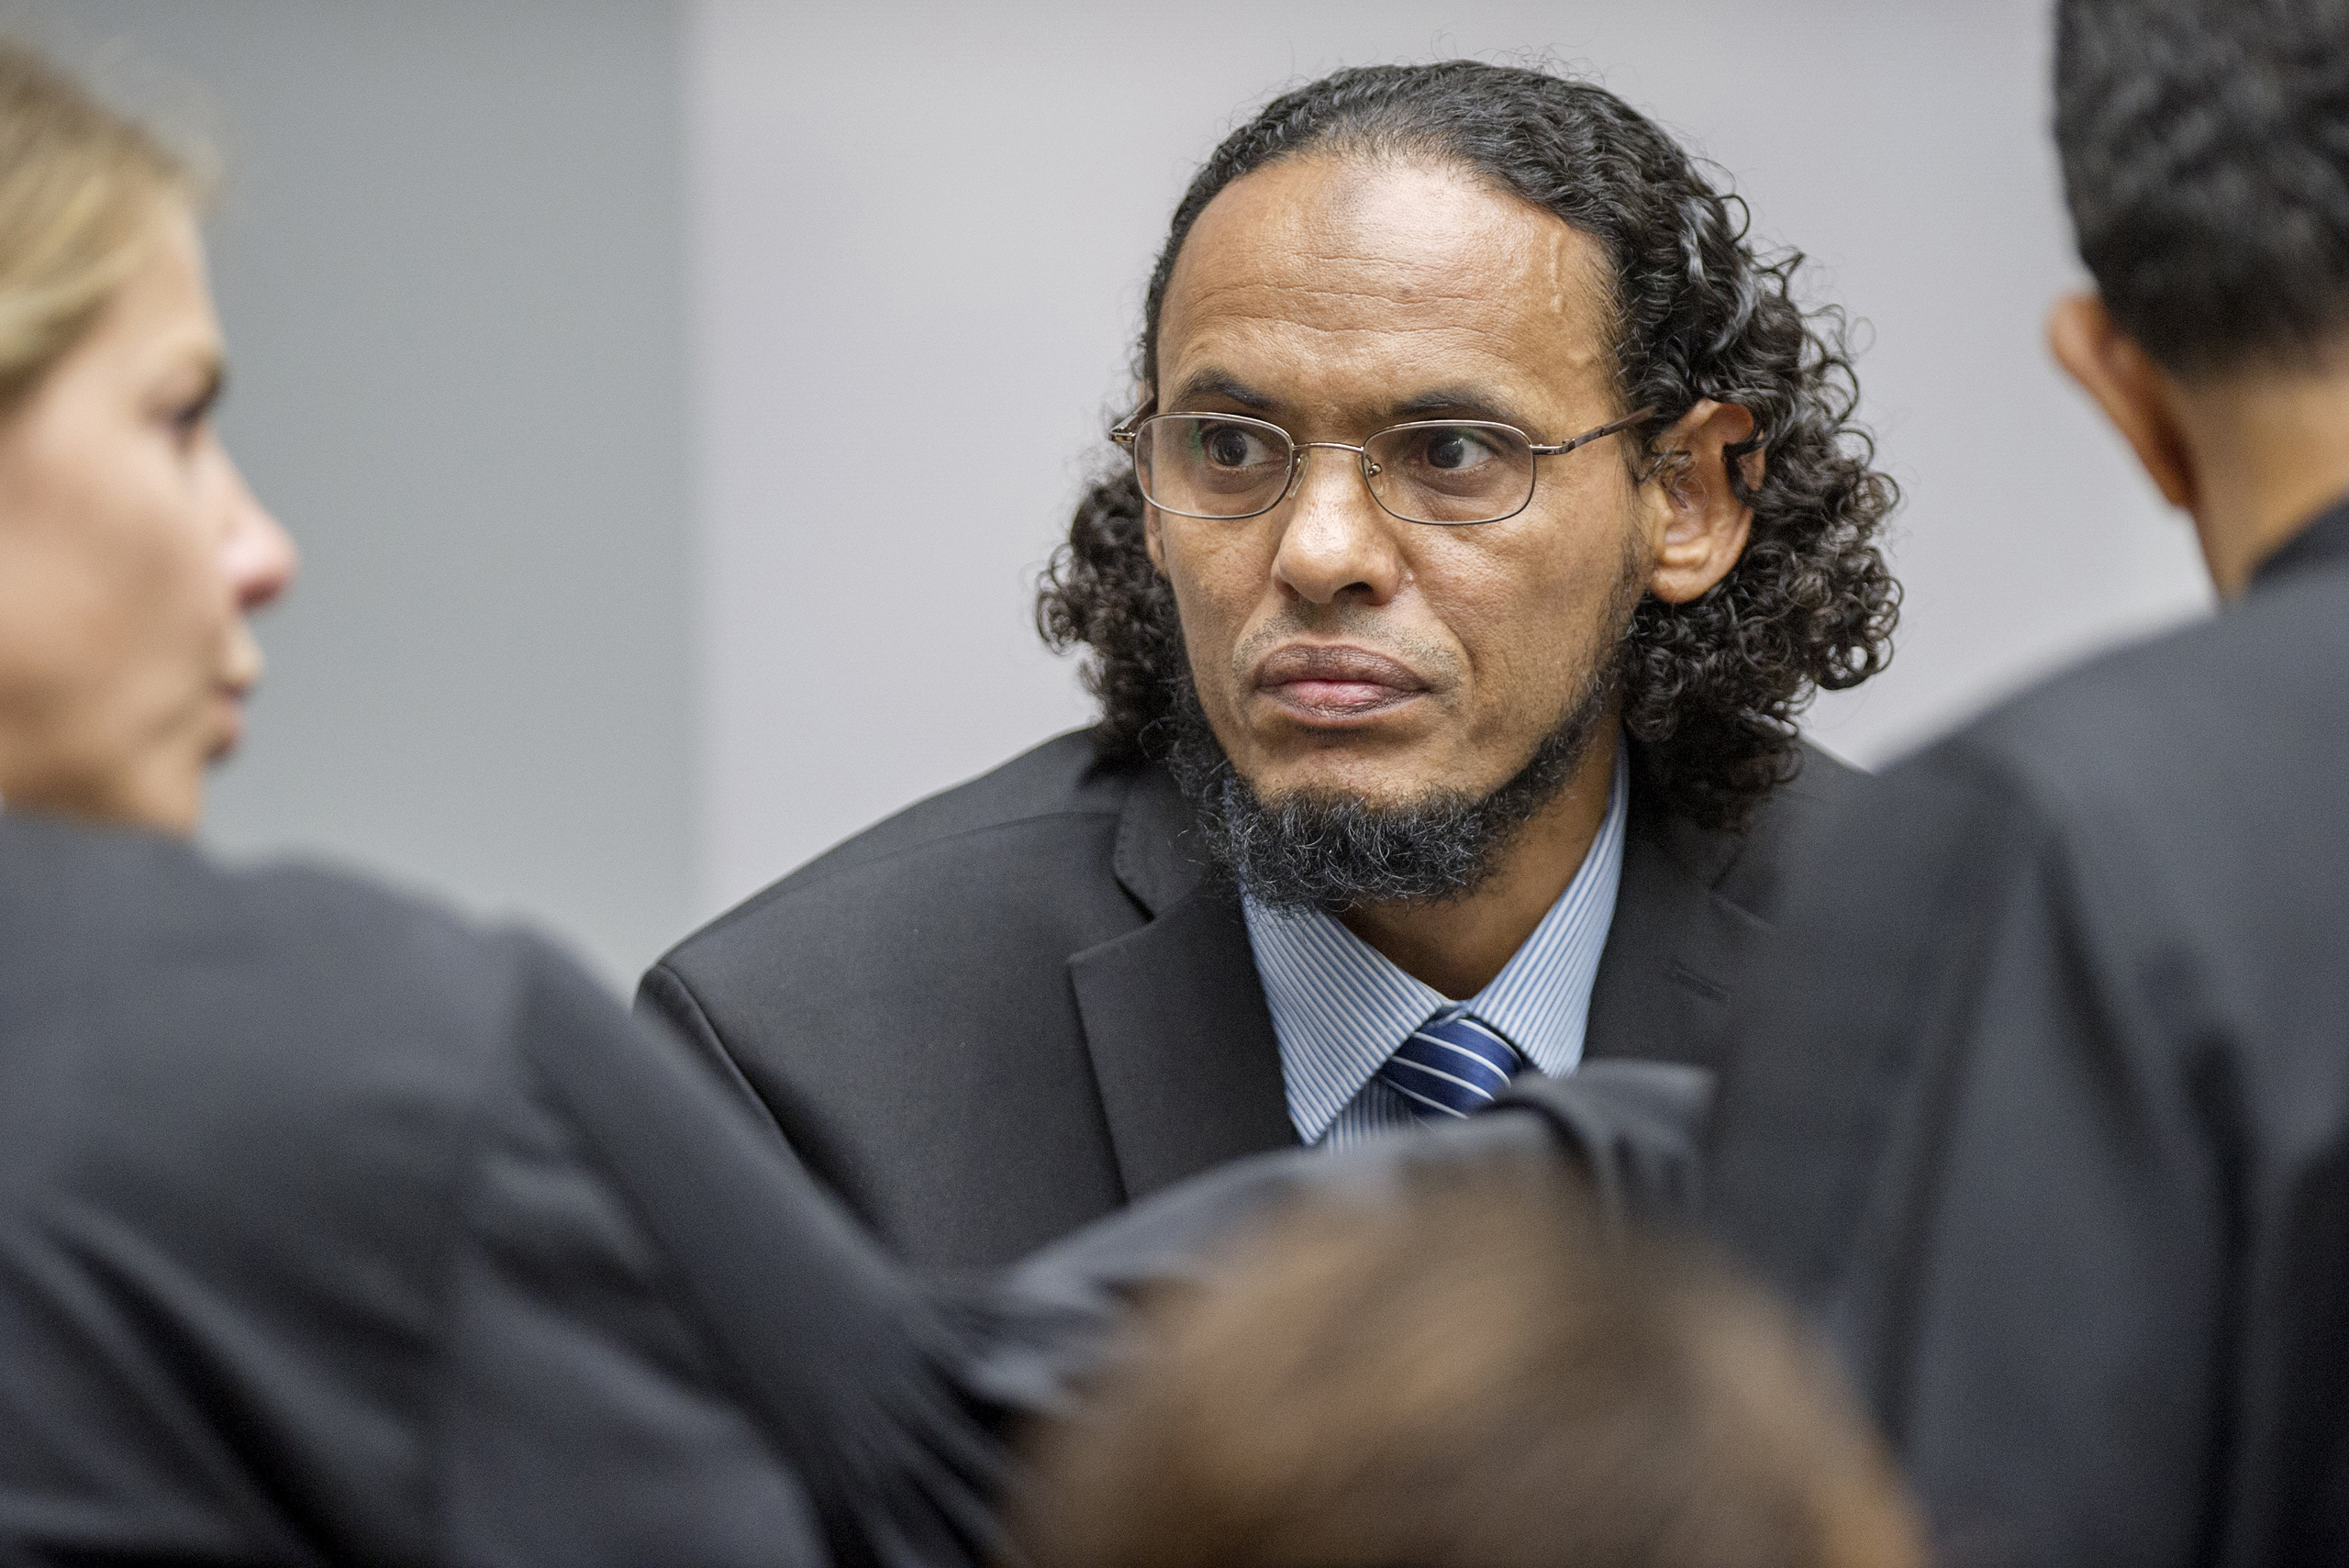 Ahmad Al Faqi Al Mahdi, center, appears at the International Criminal Court in The Hague, Netherlands, on Aug. 22, 2016, at the start of his trial on charges of involvement in the destruction of historic mausoleums in the Malian desert city of Timbuktu.